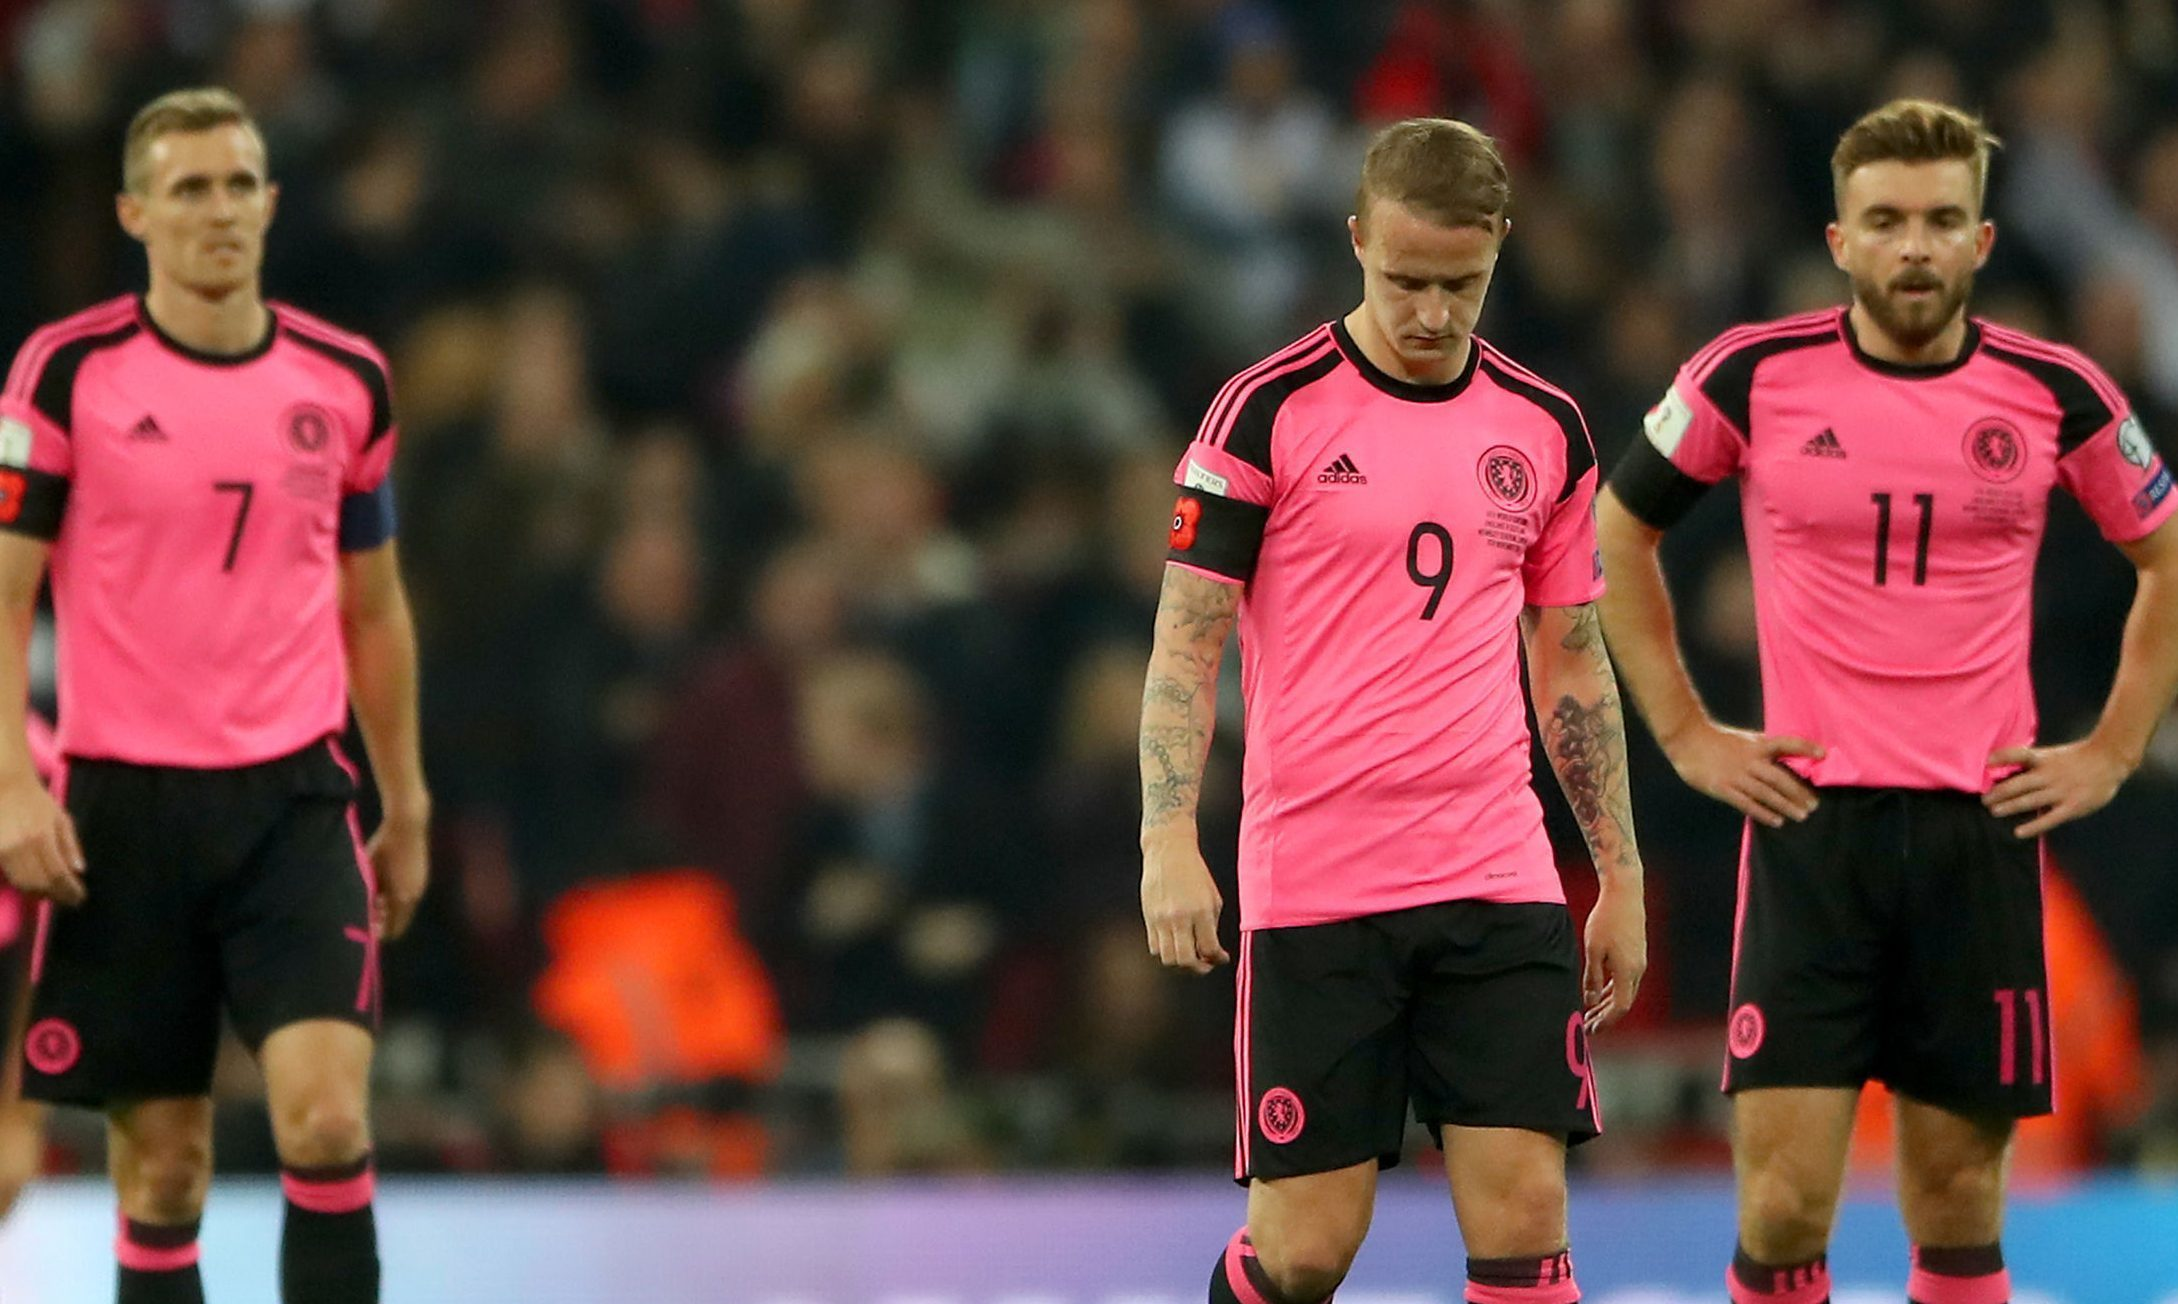 Darren Fletcher, Leigh Griffiths and James Morrison following another defeat to England